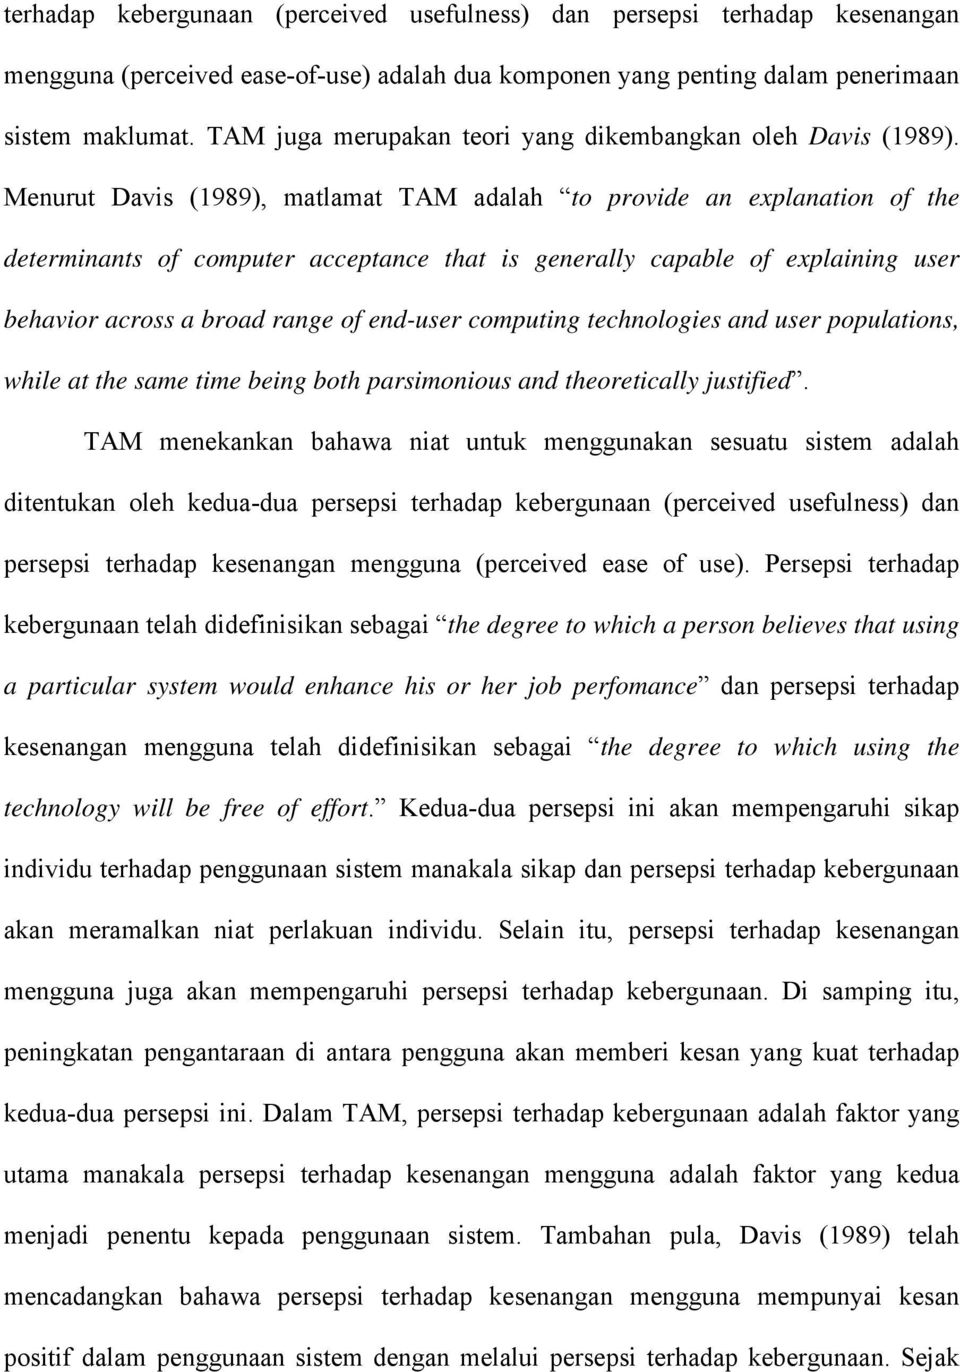 Menurut Davis (1989), matlamat TAM adalah to provide an explanation of the determinants of computer acceptance that is generally capable of explaining user behavior across a broad range of end-user